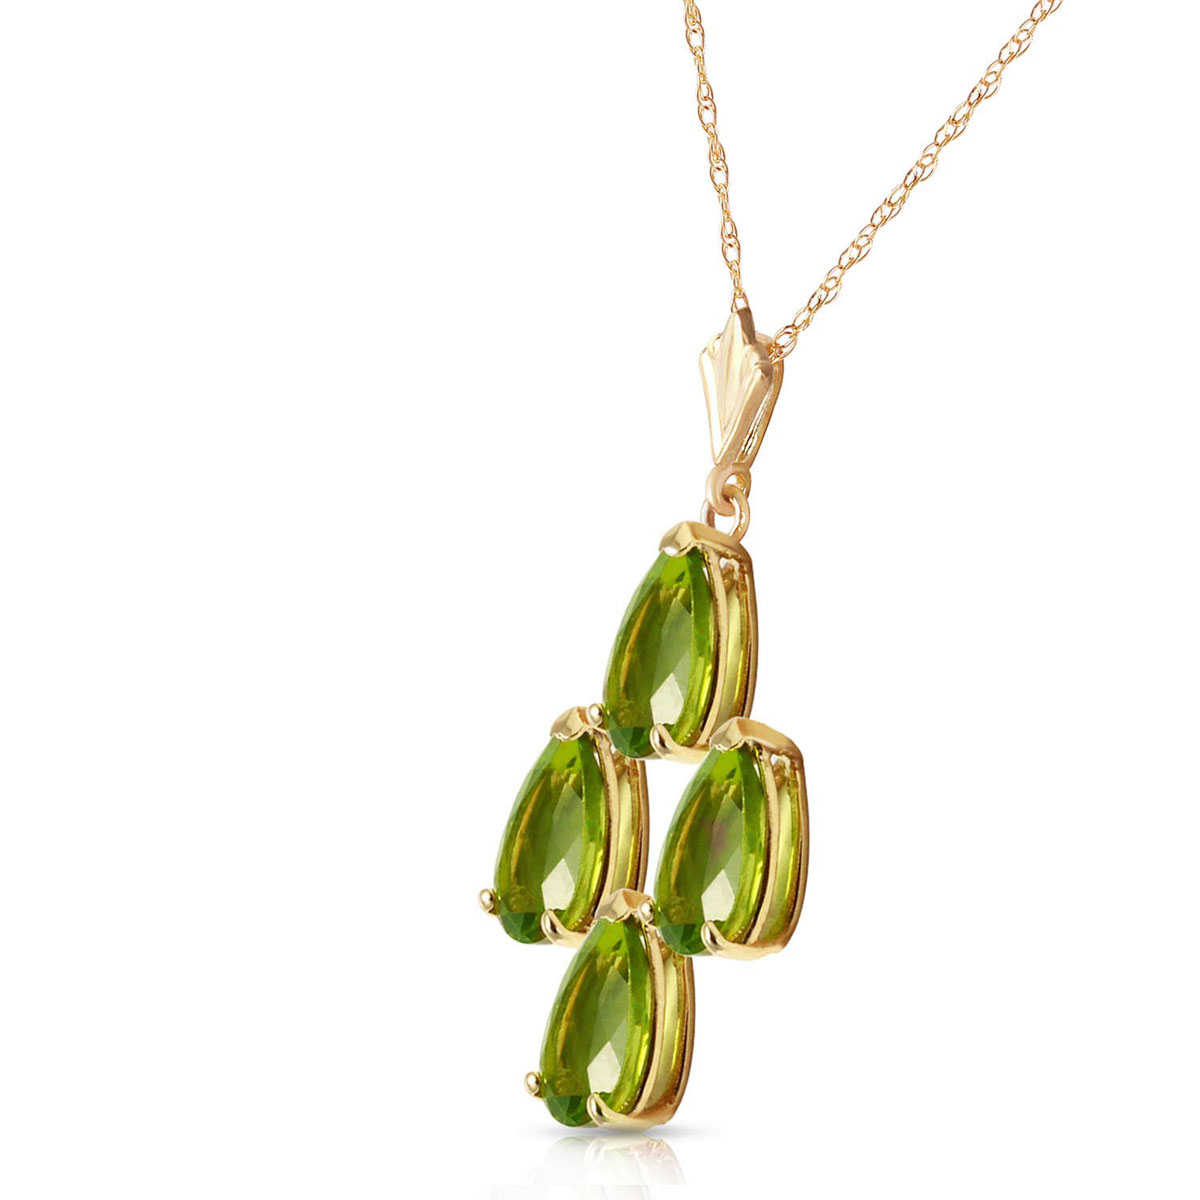 Peridot Chandelier Pendant Necklace 2.25 ctw in 9ct Gold